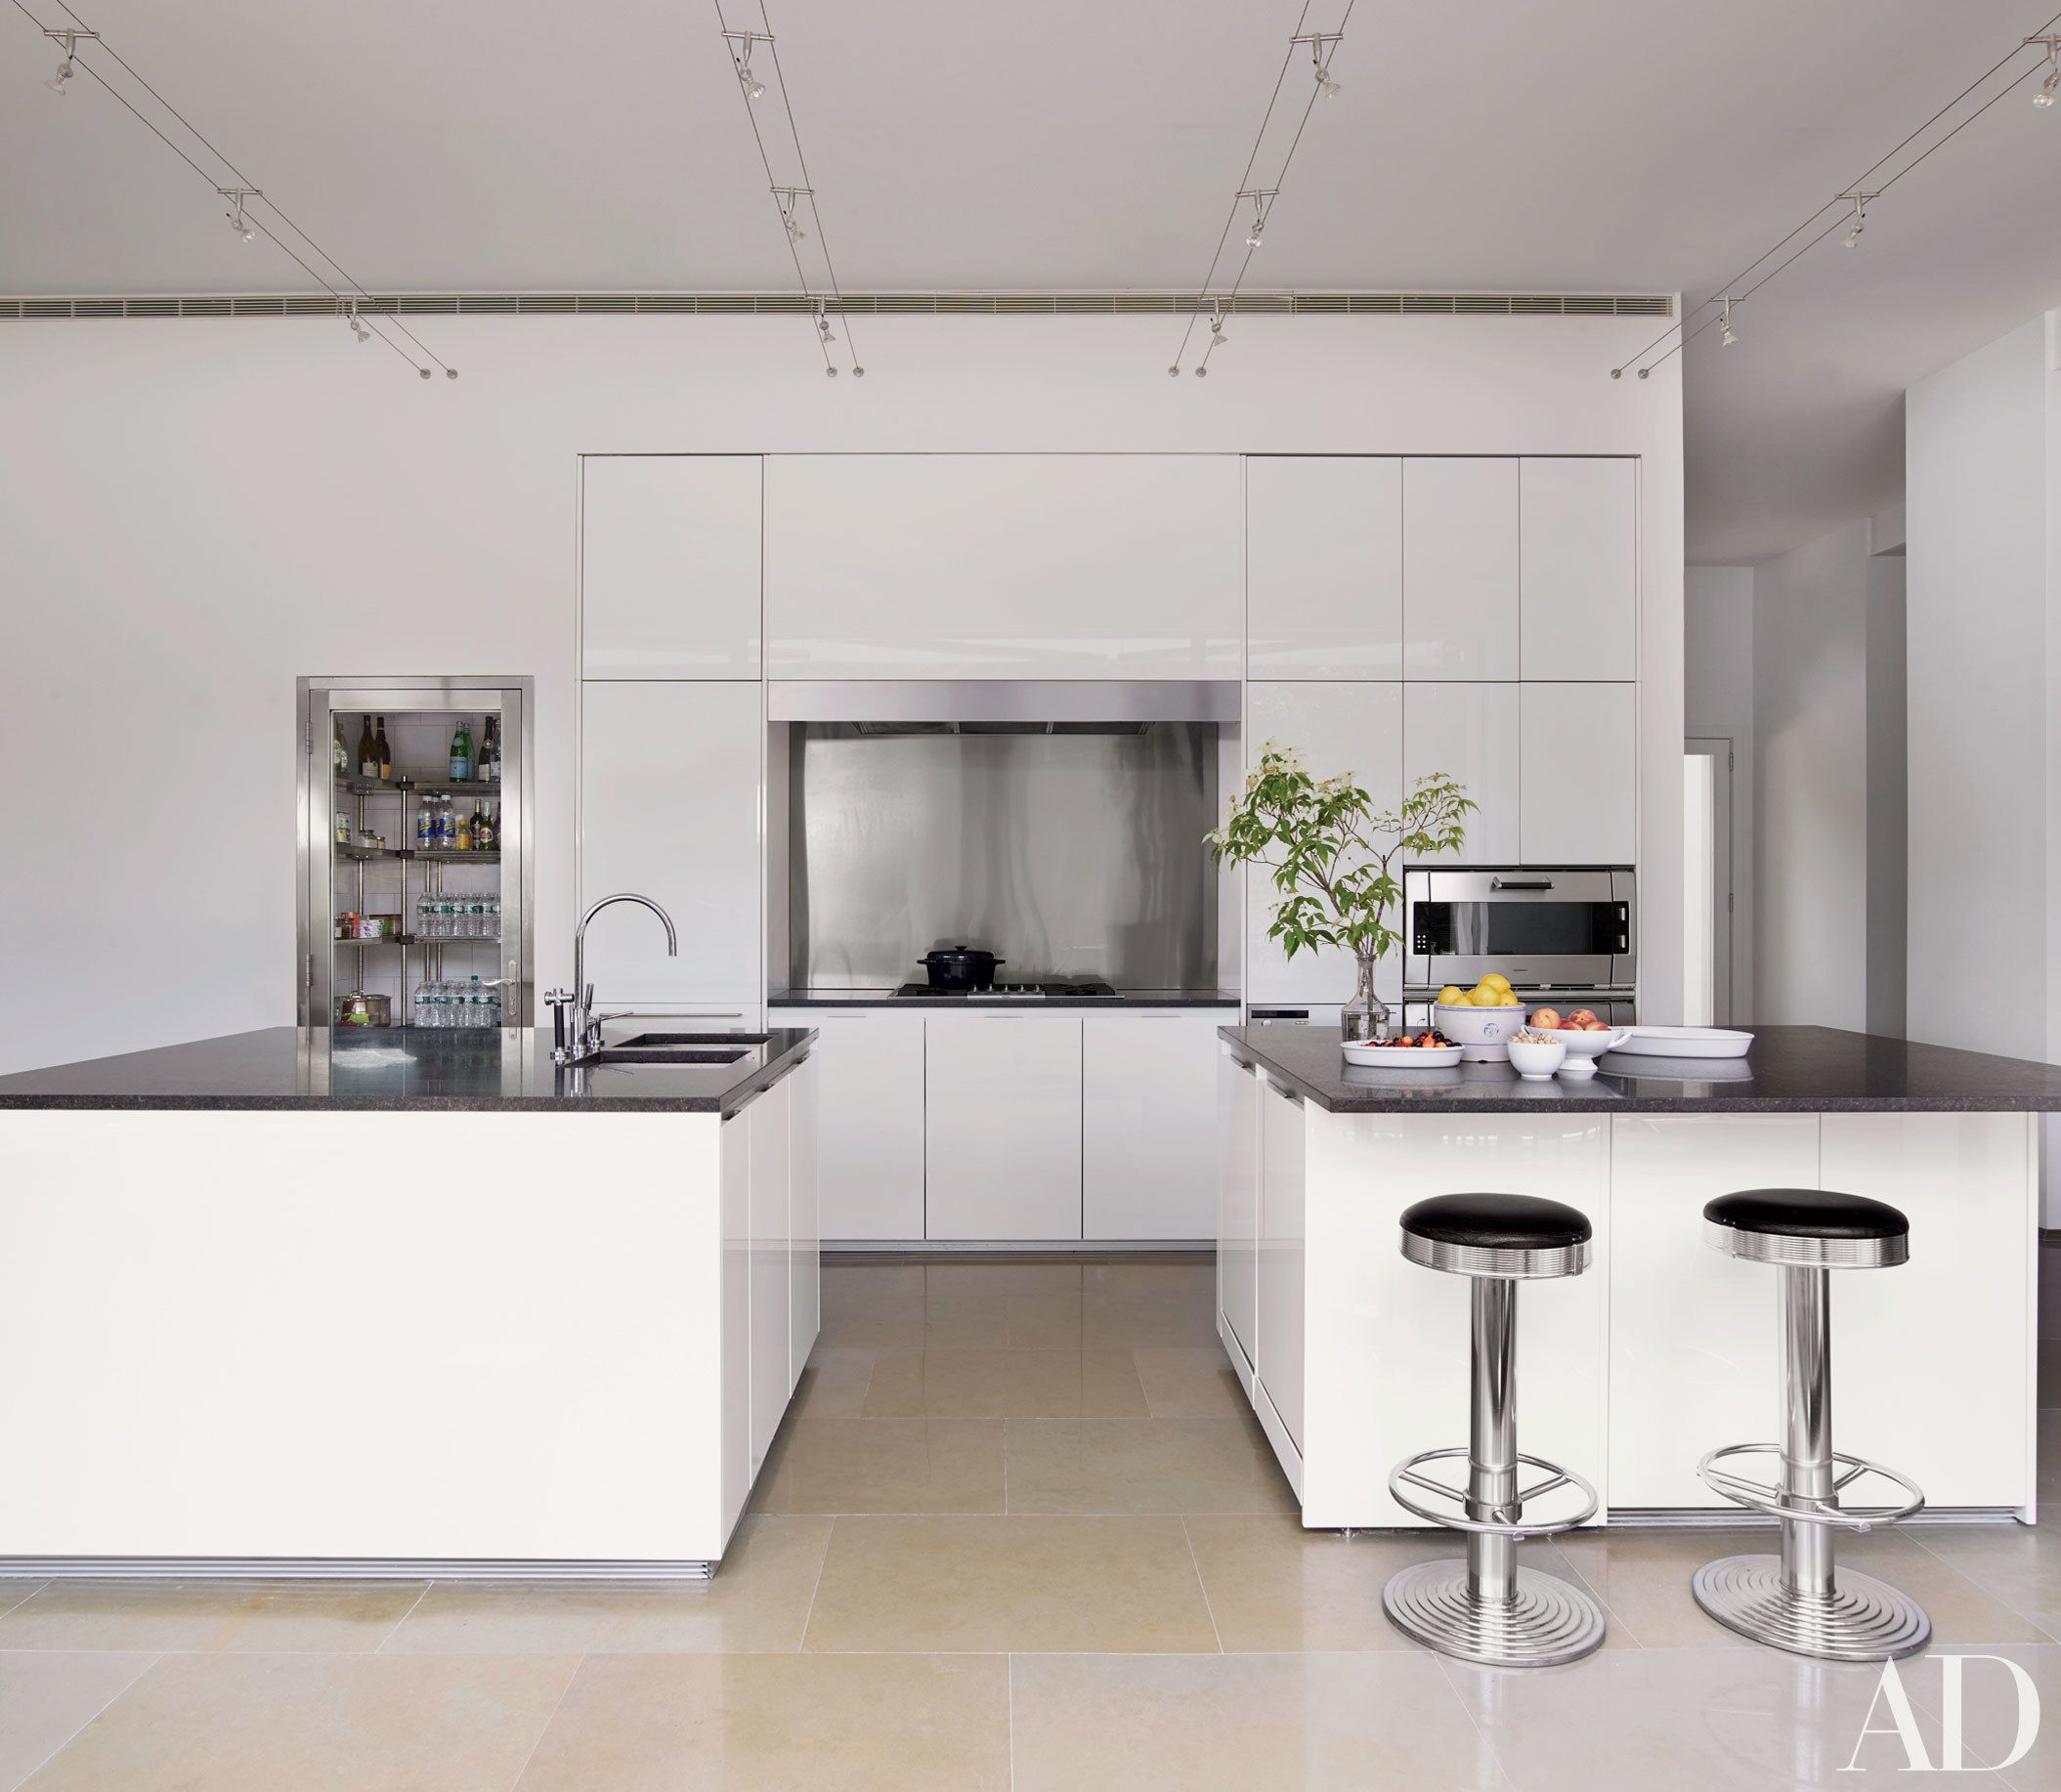 35 Sleek And Inspiring Contemporary Kitchens  Photos Kitchen Alluring Kitchen Designs Contemporary Design Inspiration